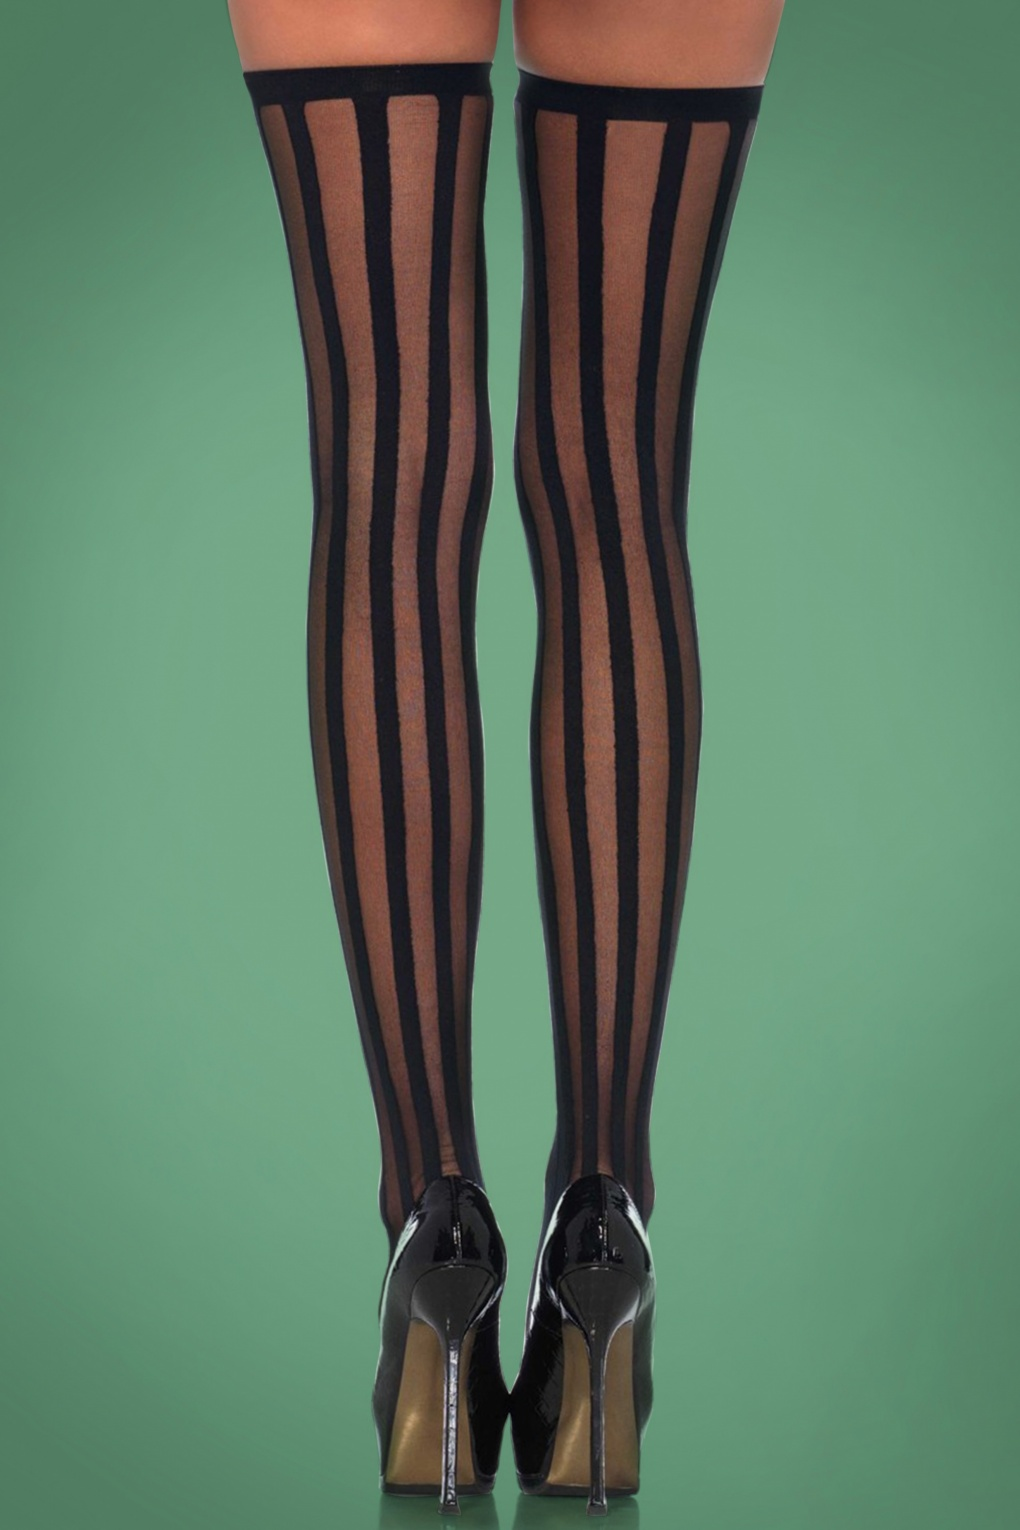 Black Sheer Stockings With Opaque Vertical Stripes One Size